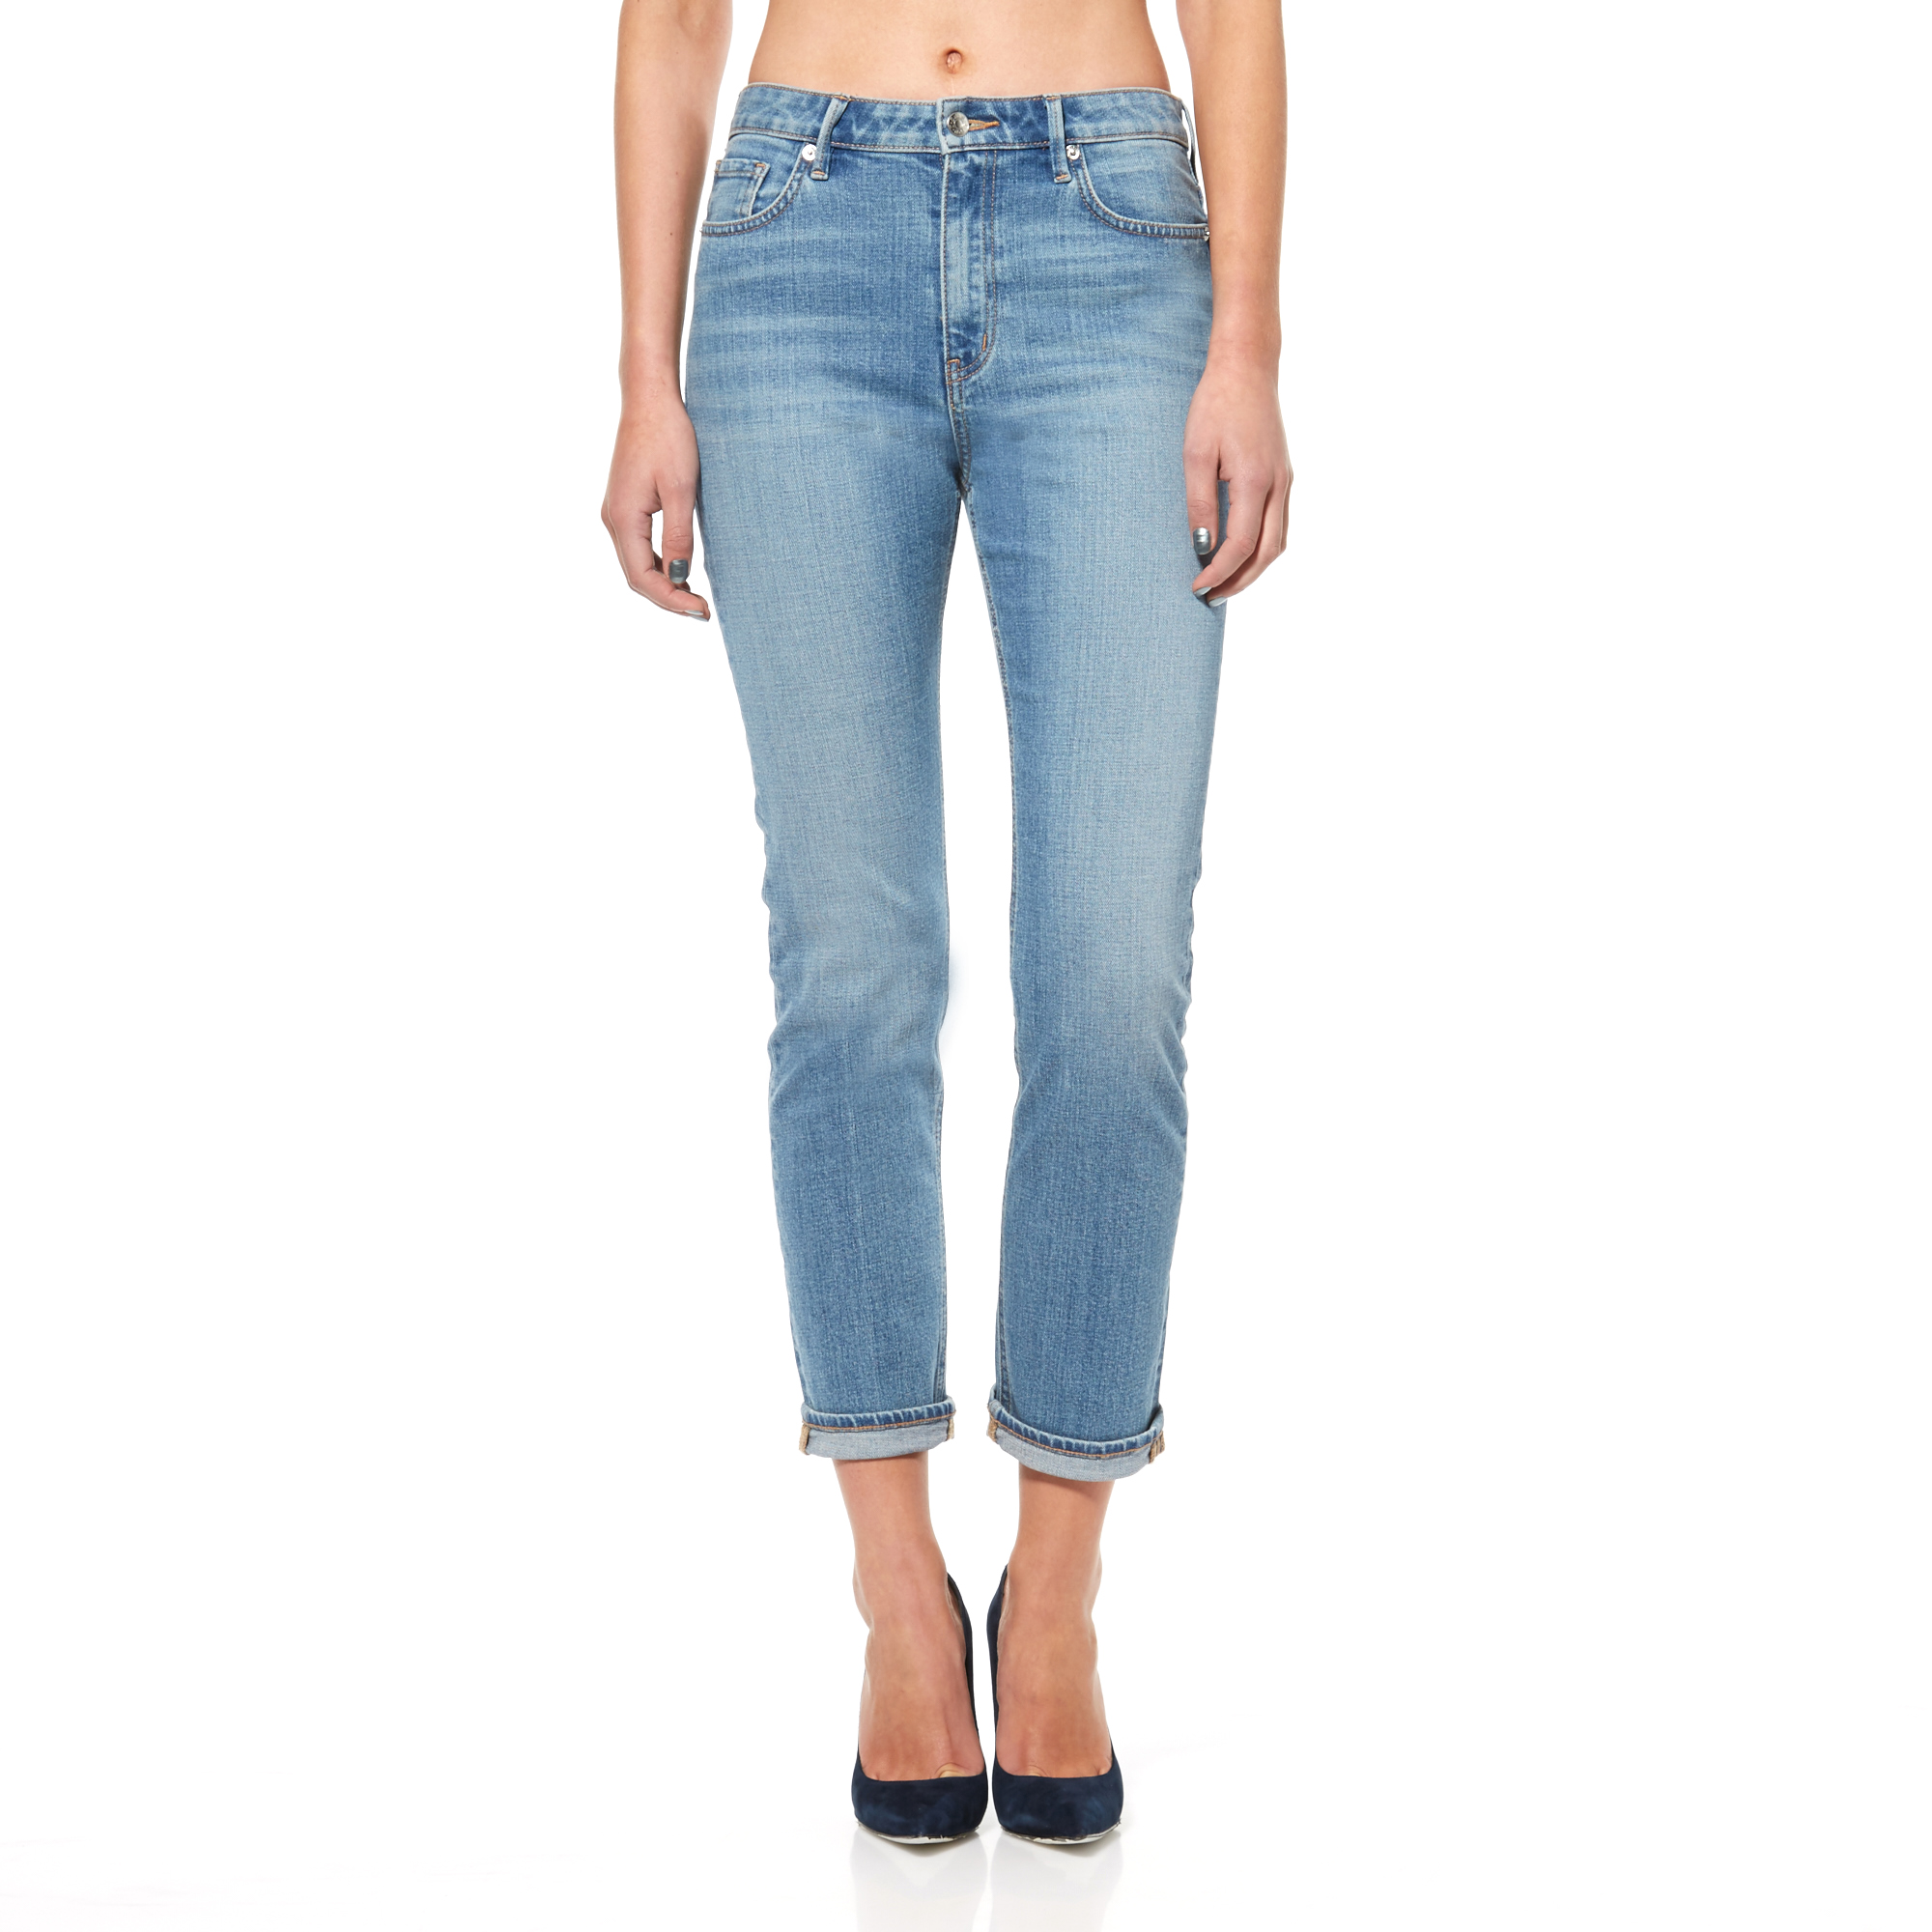 48de47a6 Bumster Skinny Fit Guide | Womens Jeans | Jeans Online | Riders By Lee